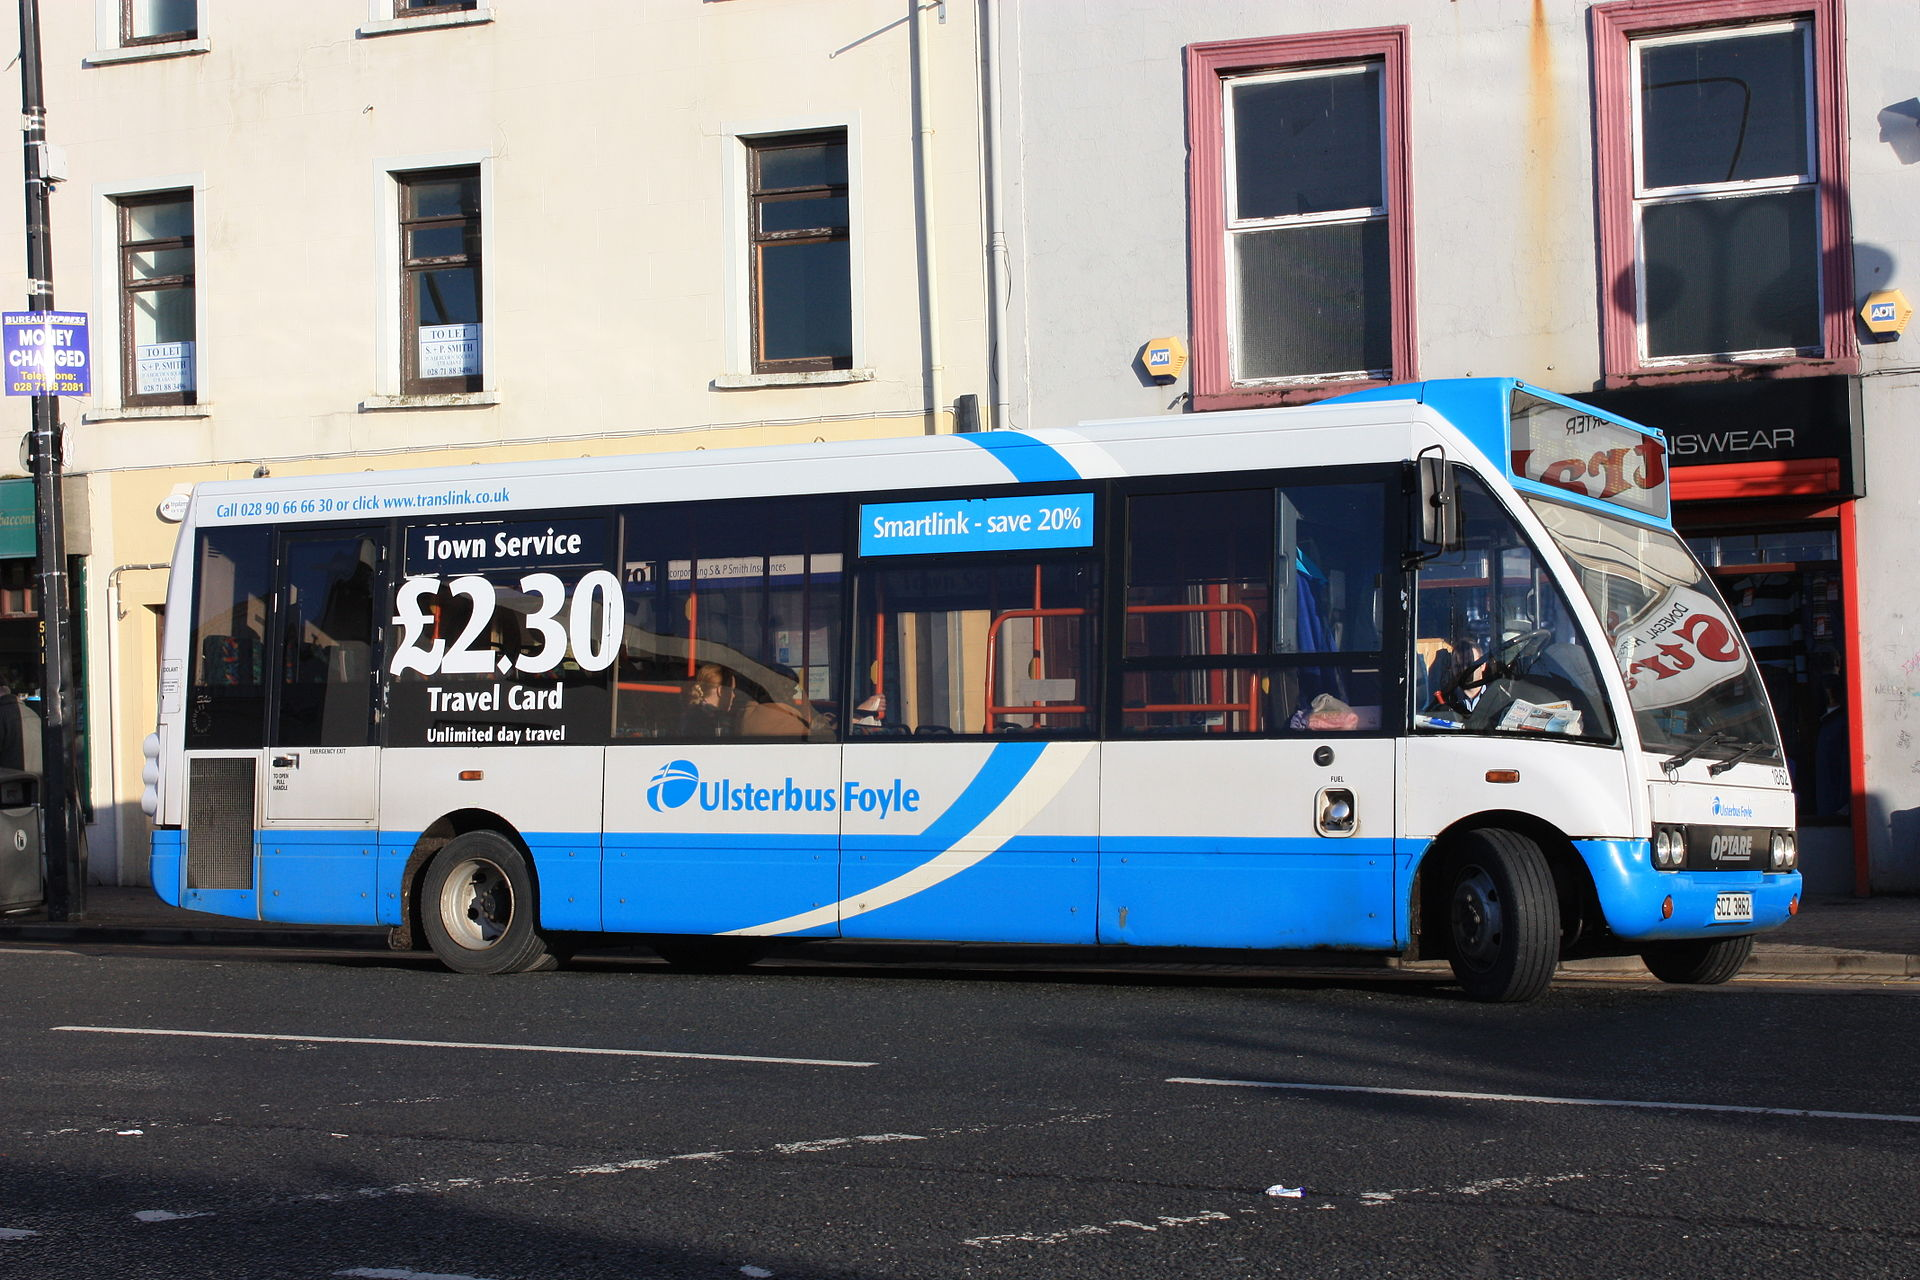 ulsterbus foyle wikipedia. Black Bedroom Furniture Sets. Home Design Ideas